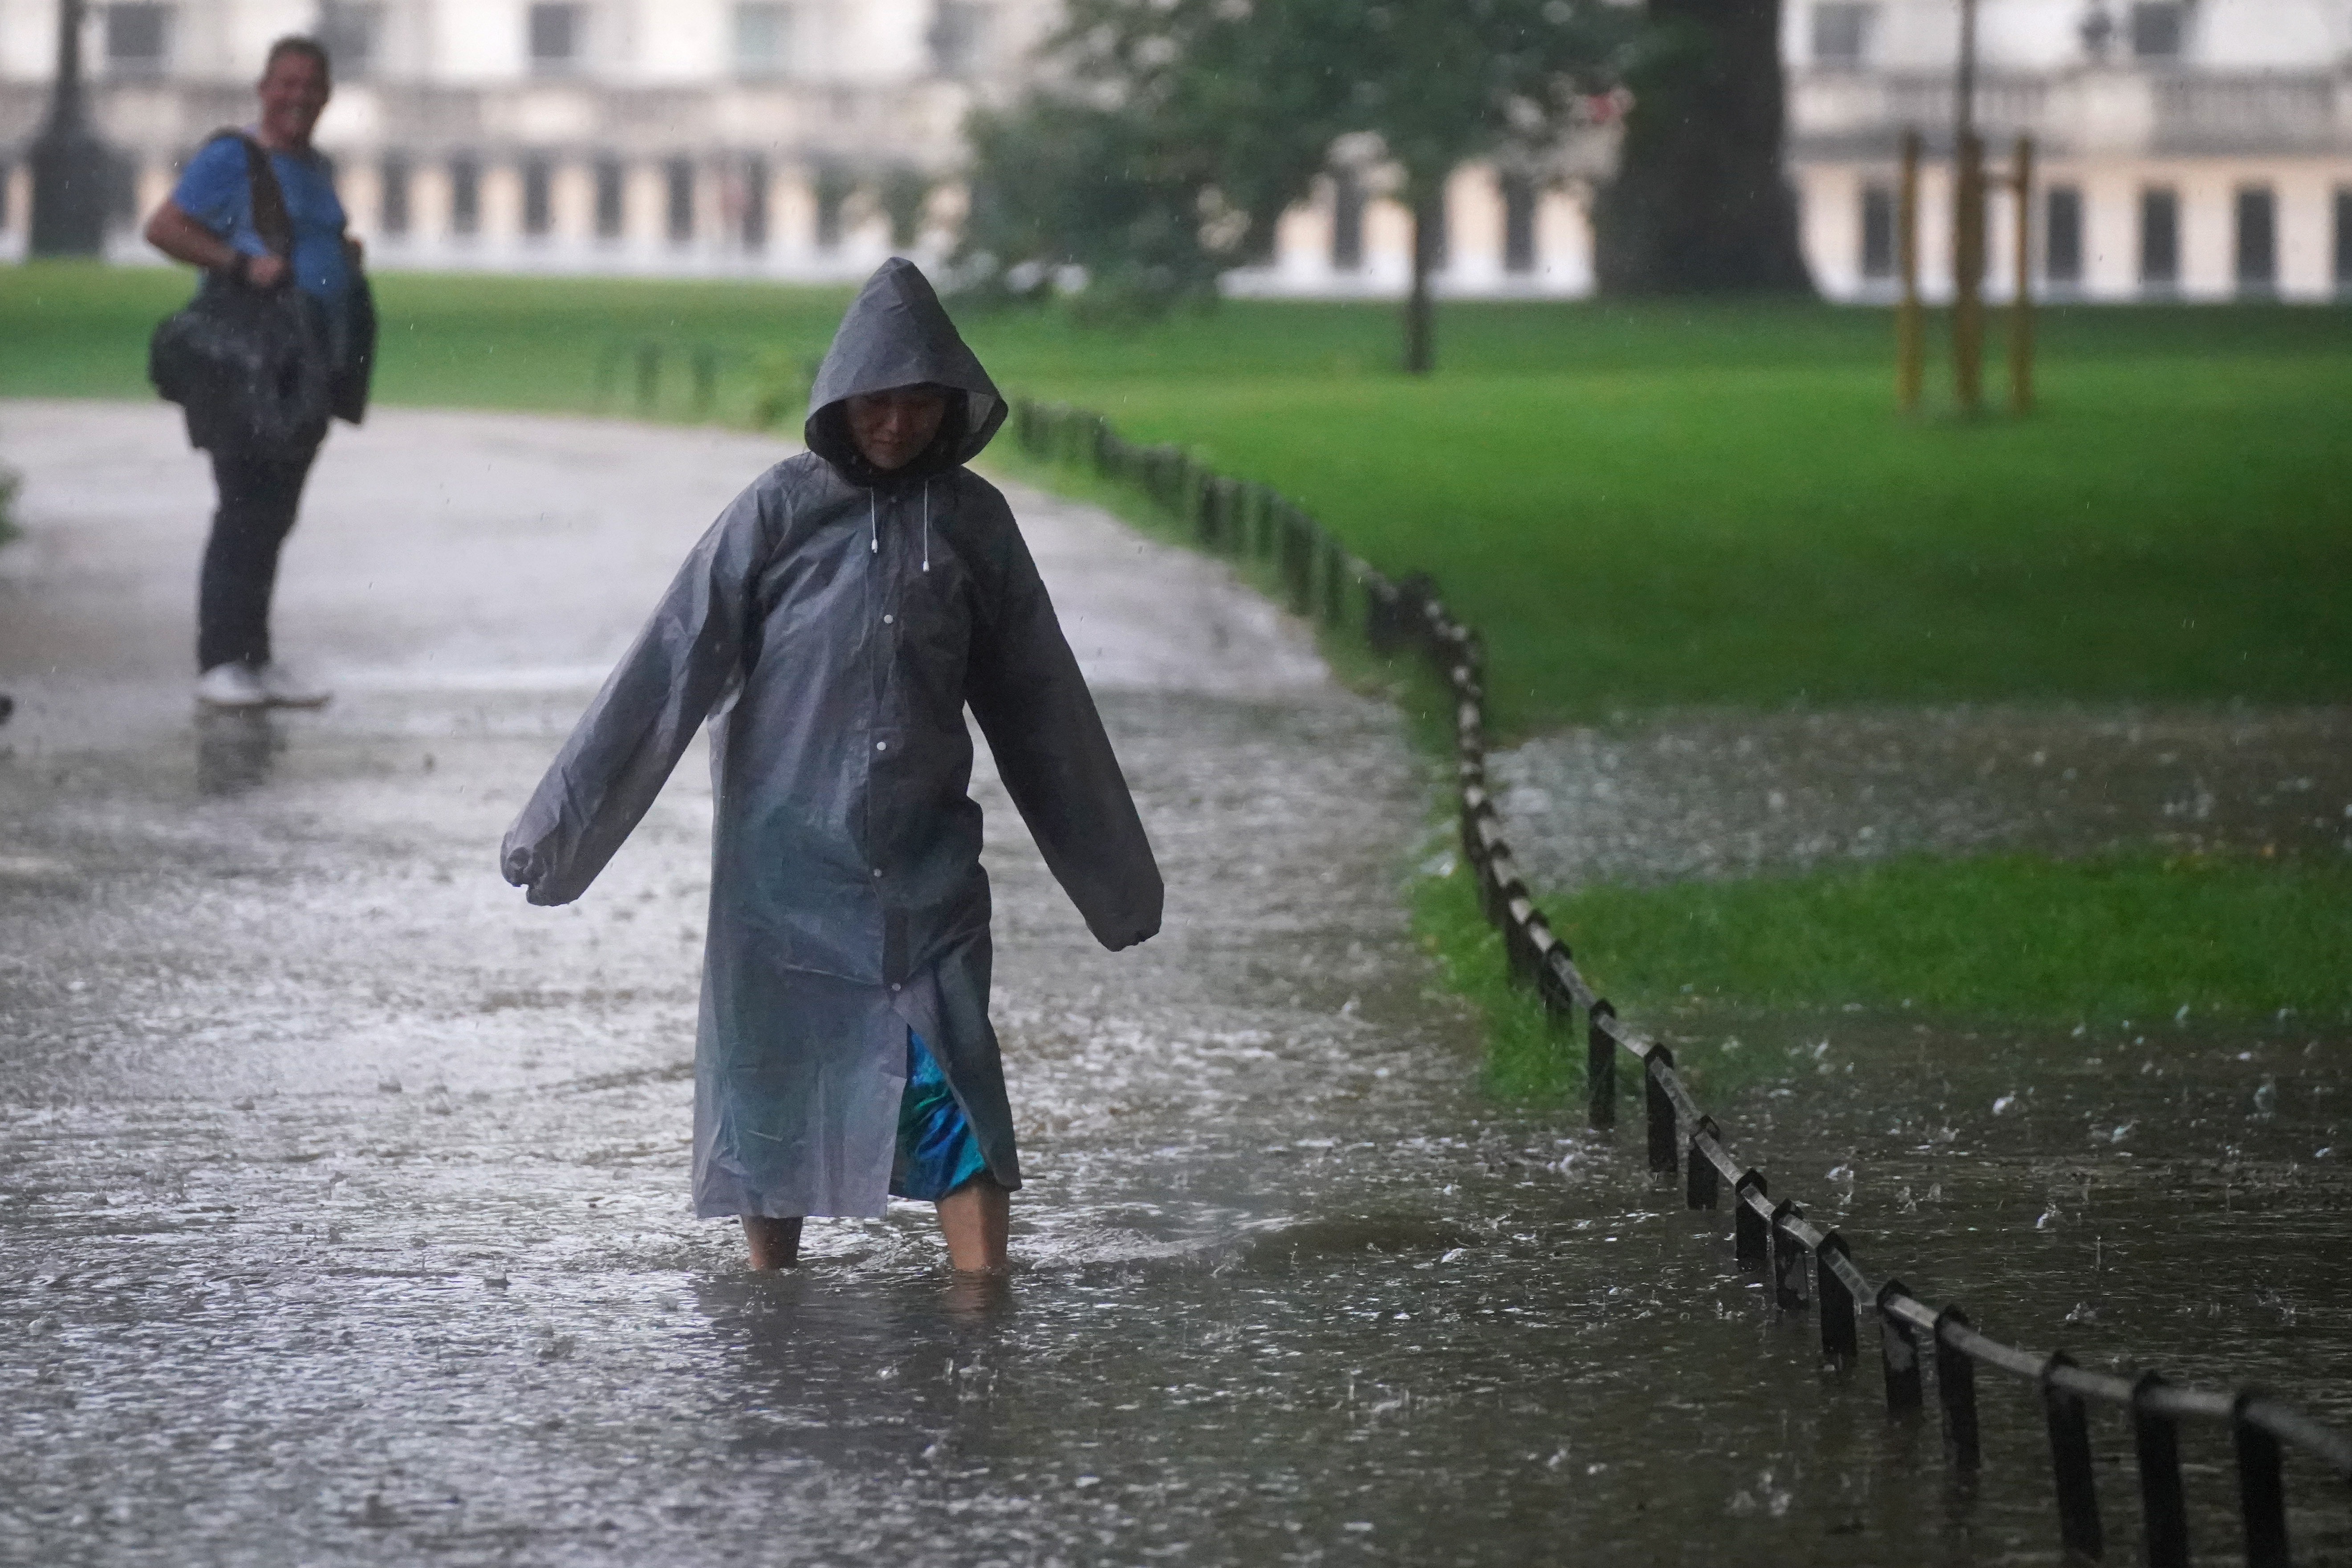 <p>A woman walks through a flooded path in St James's Park in central London. Thunderstorms bringing lightning and torrential rain to the south are set to continue until Monday, forecasters have said. Picture date: Sunday July 25, 2021.</p>